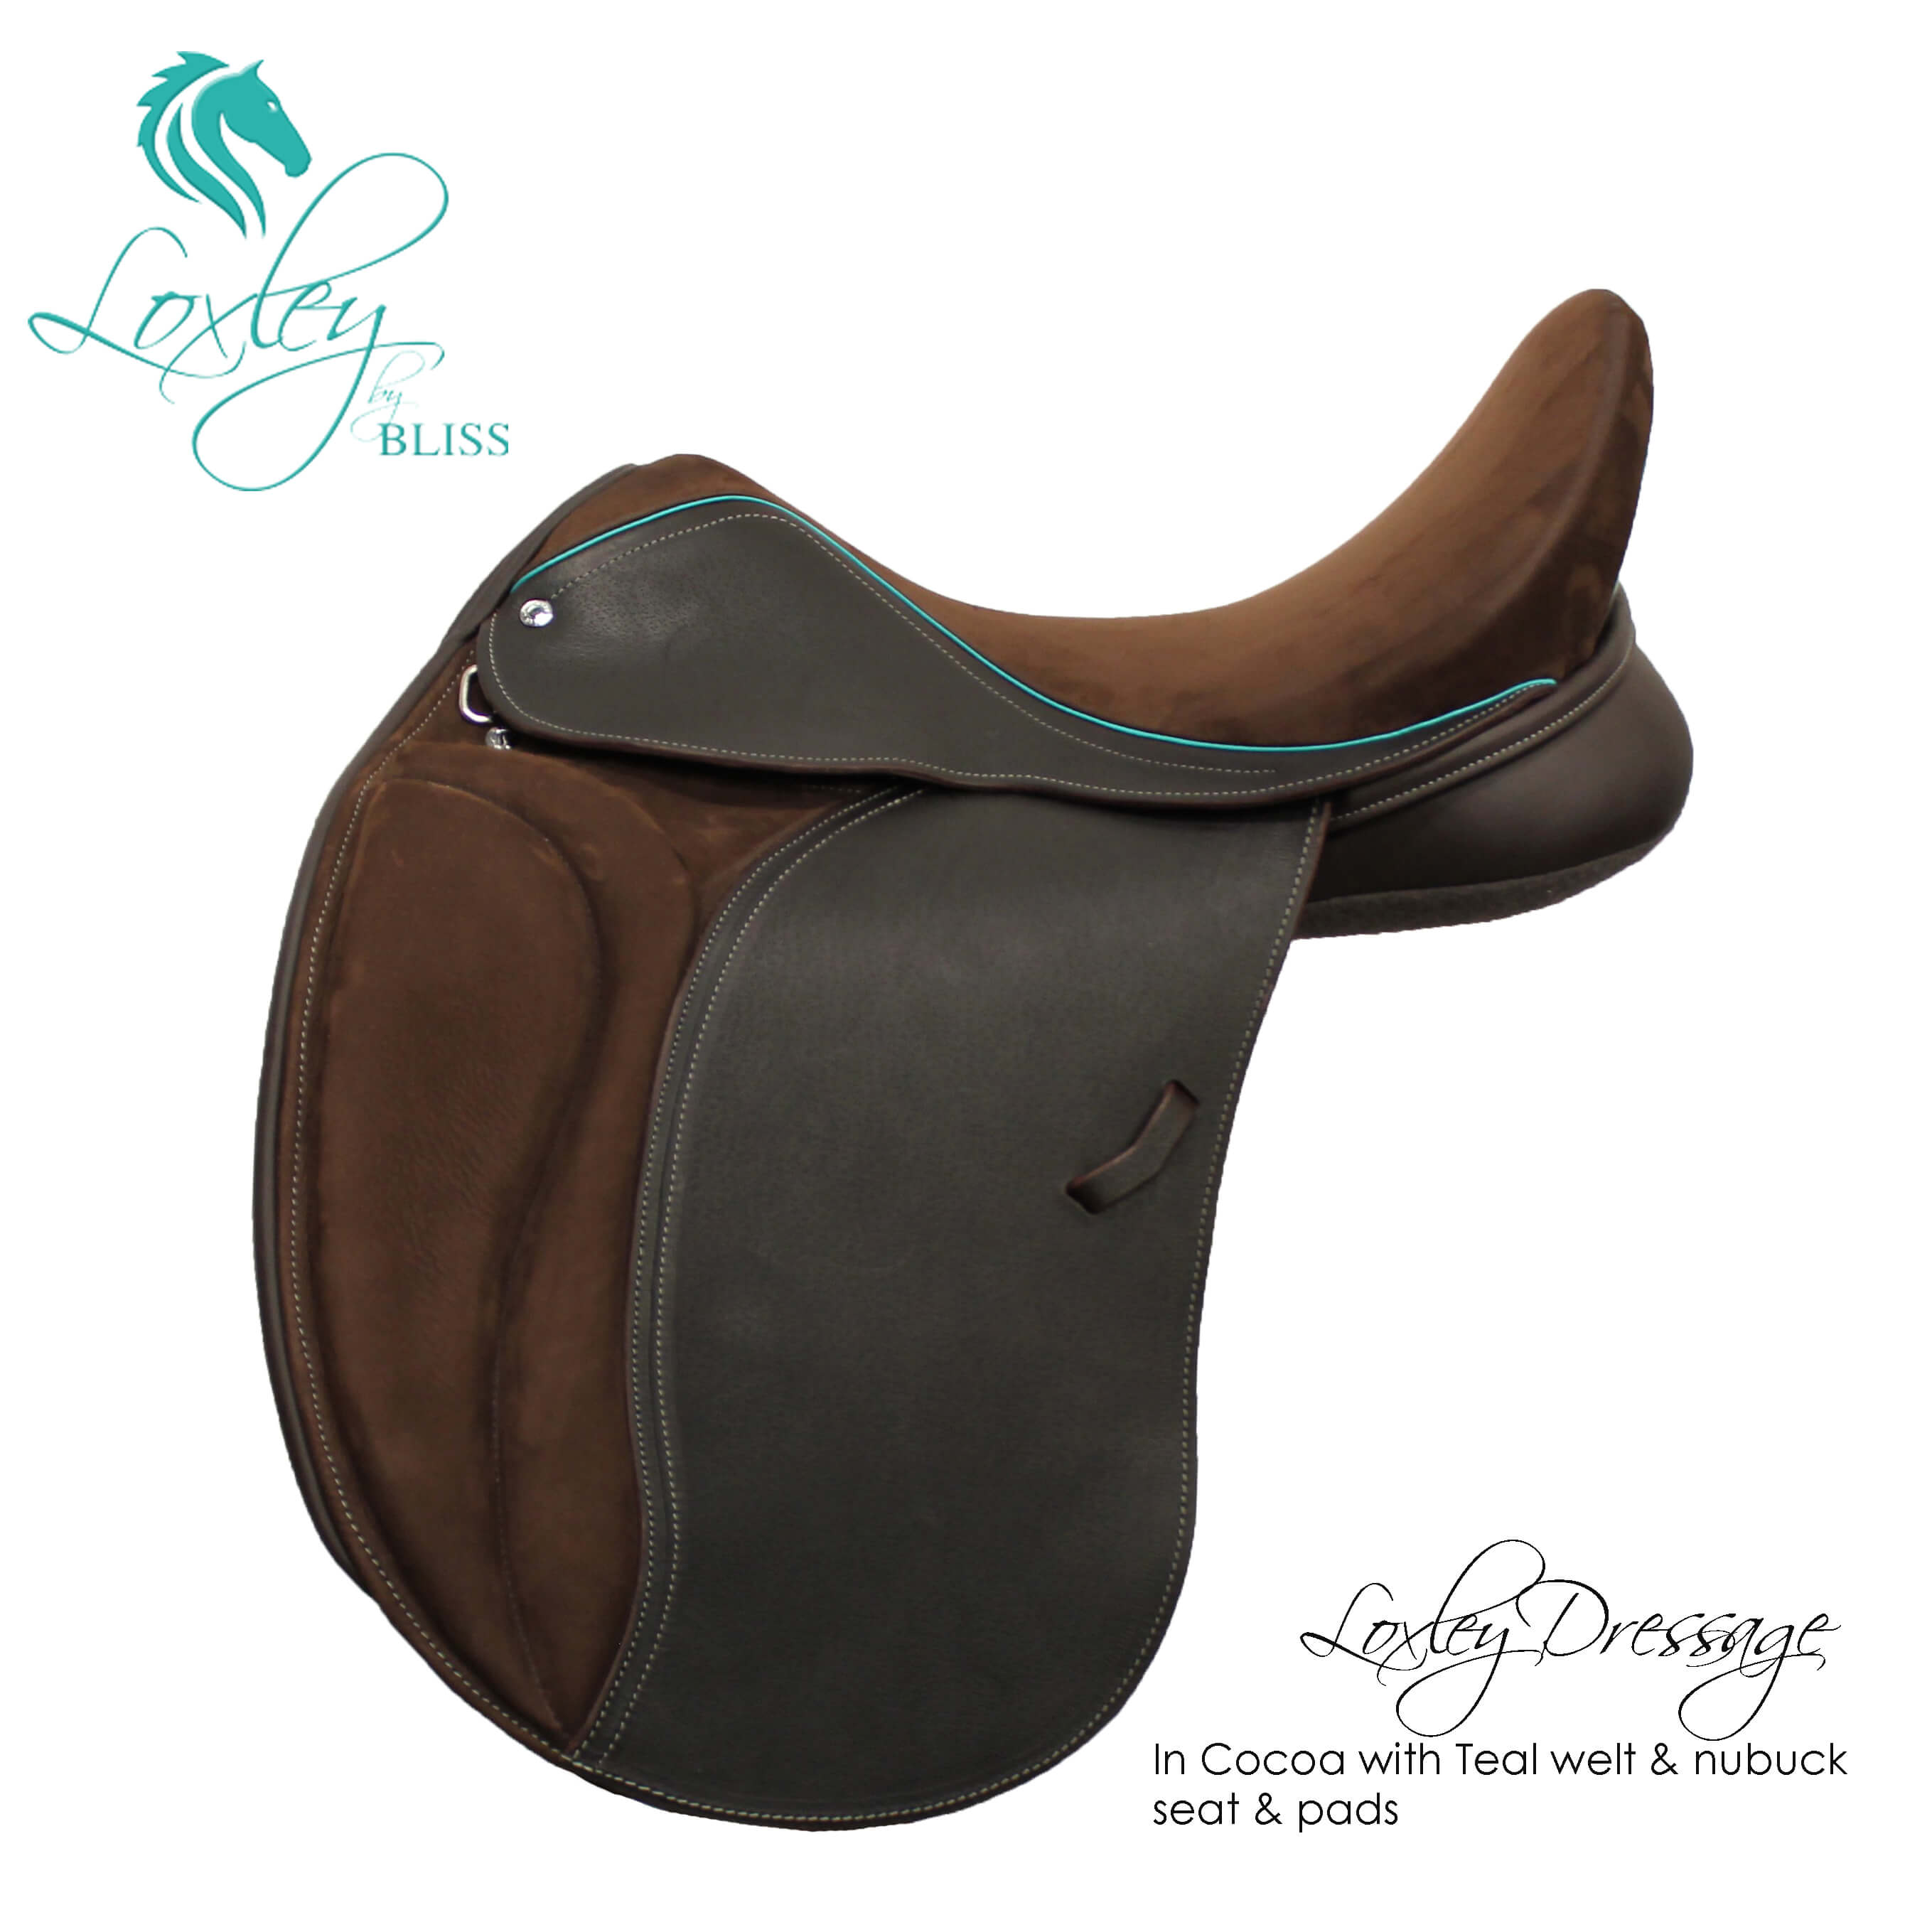 6 Loxley Dressage Cocoa Teal Nubuck